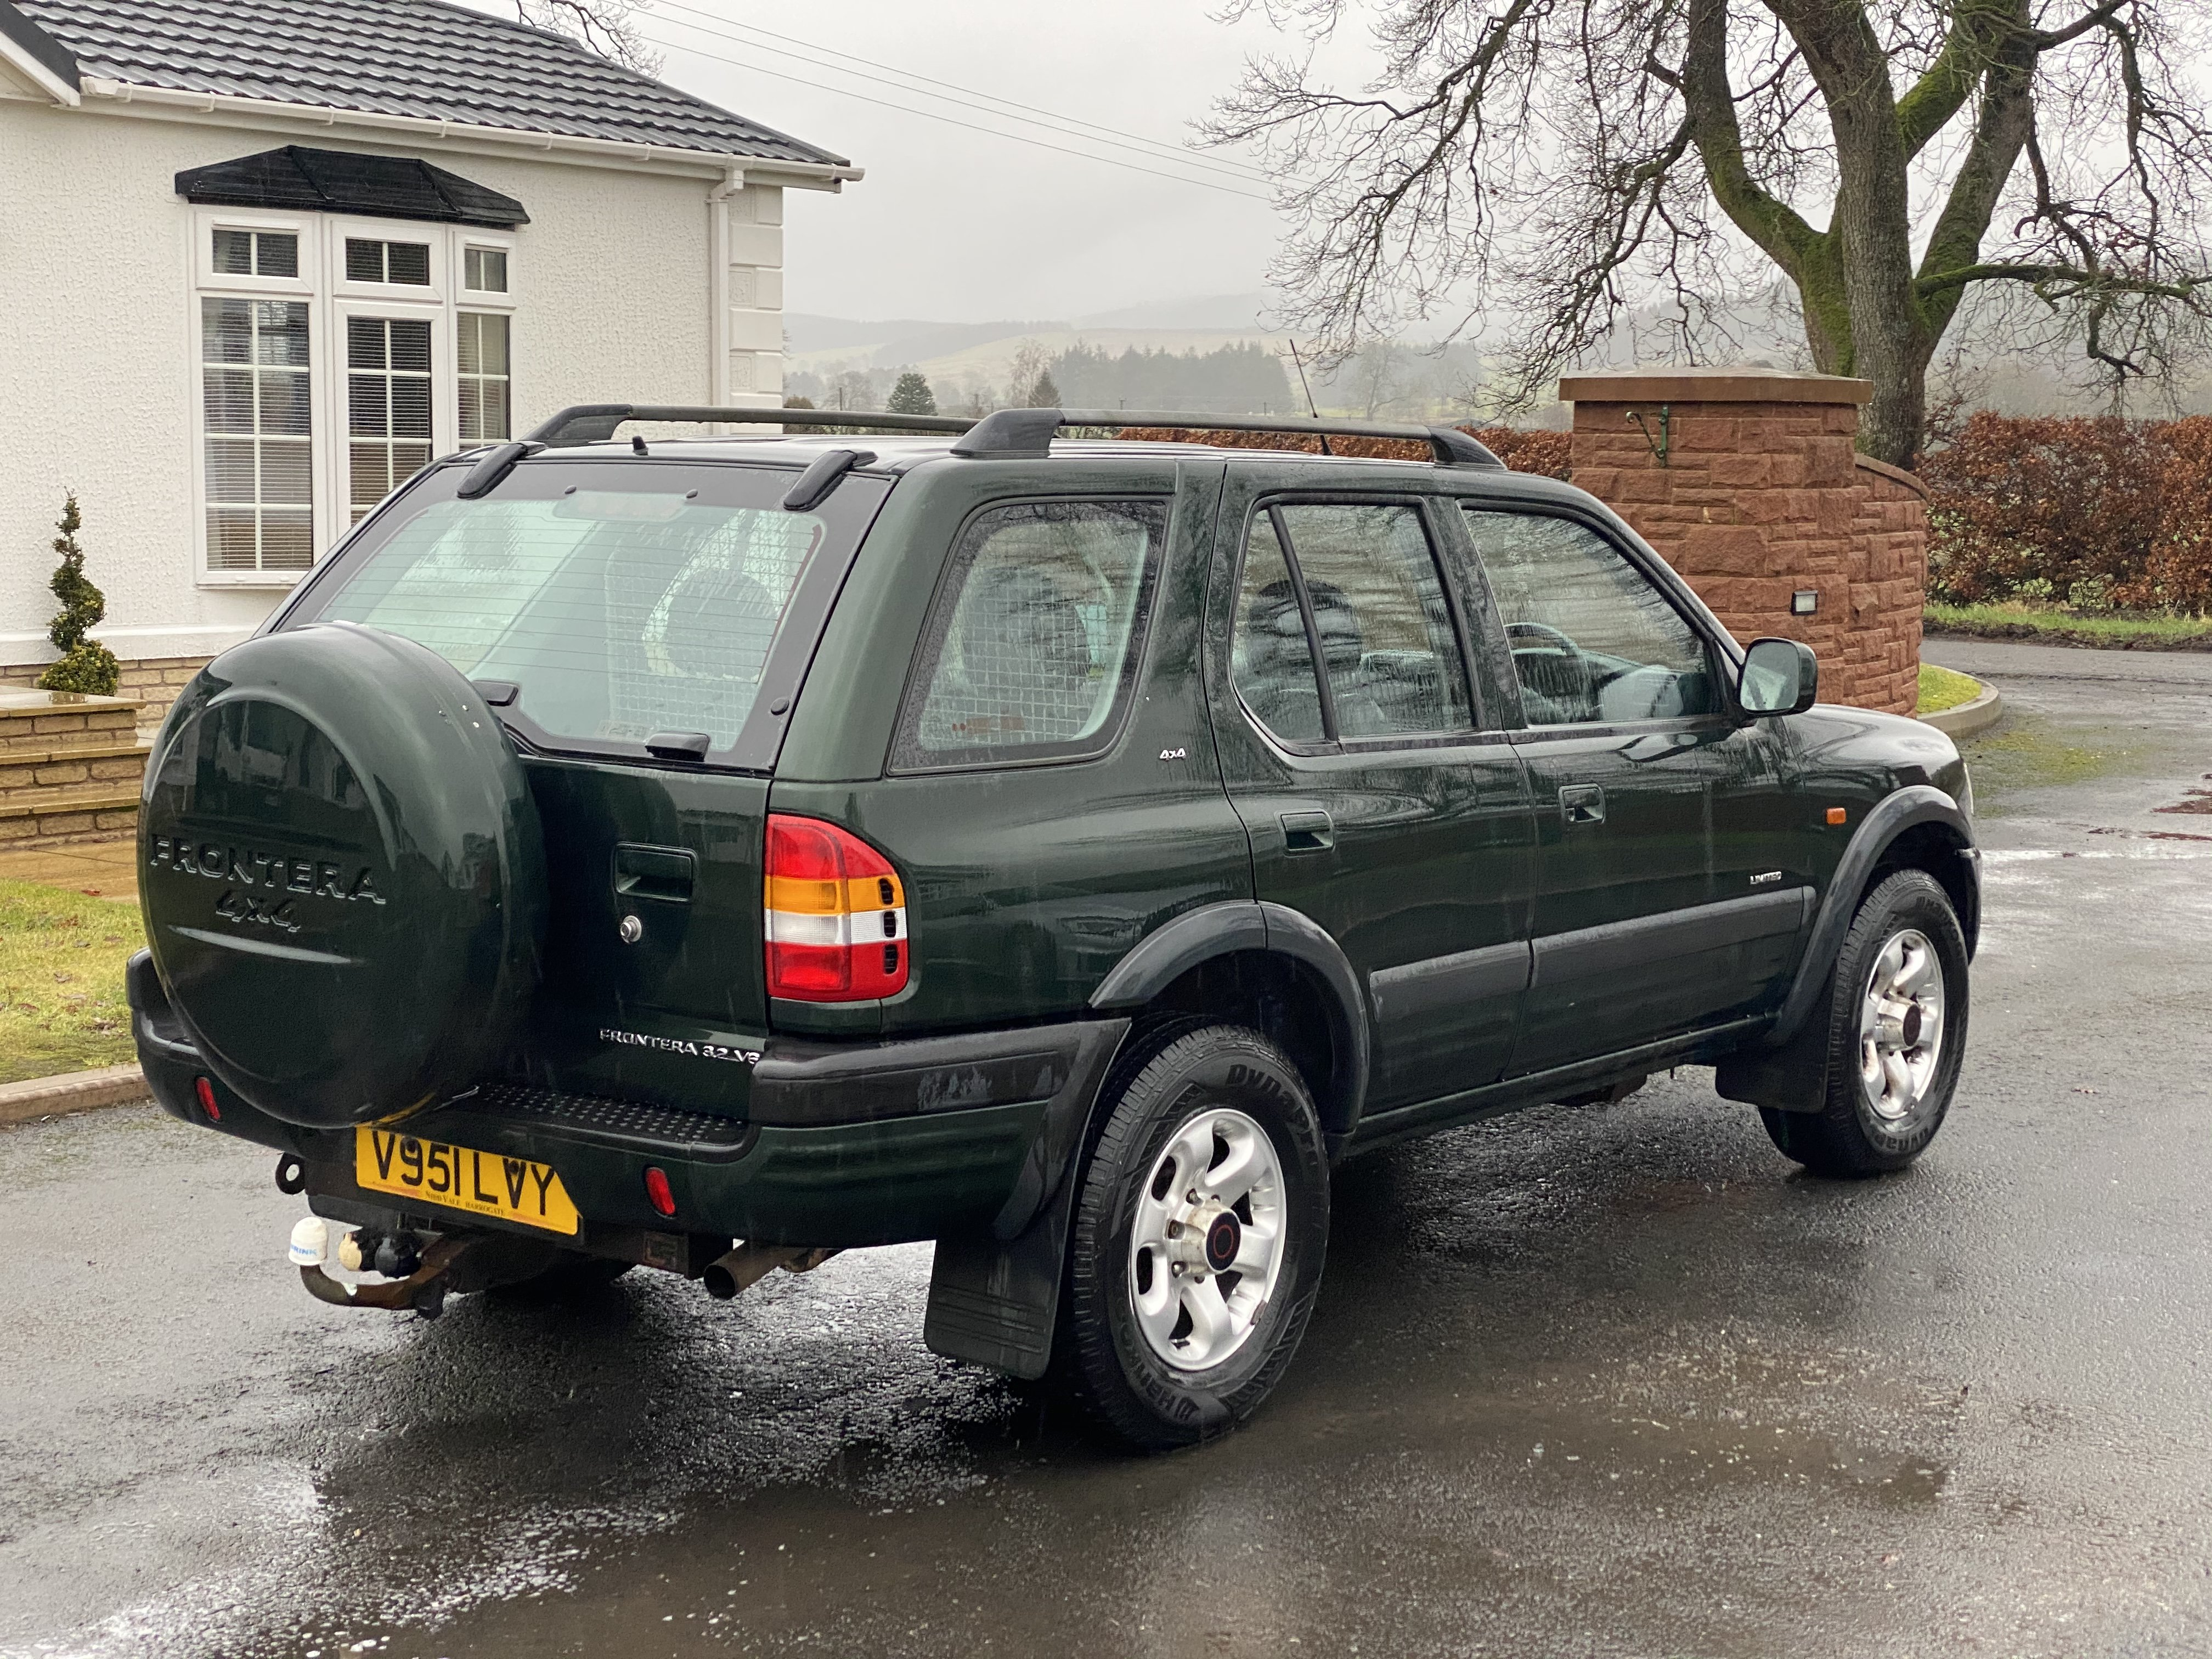 1999 Vauxhall Frontera 3.2 V6 For Sale (picture 6 of 6)